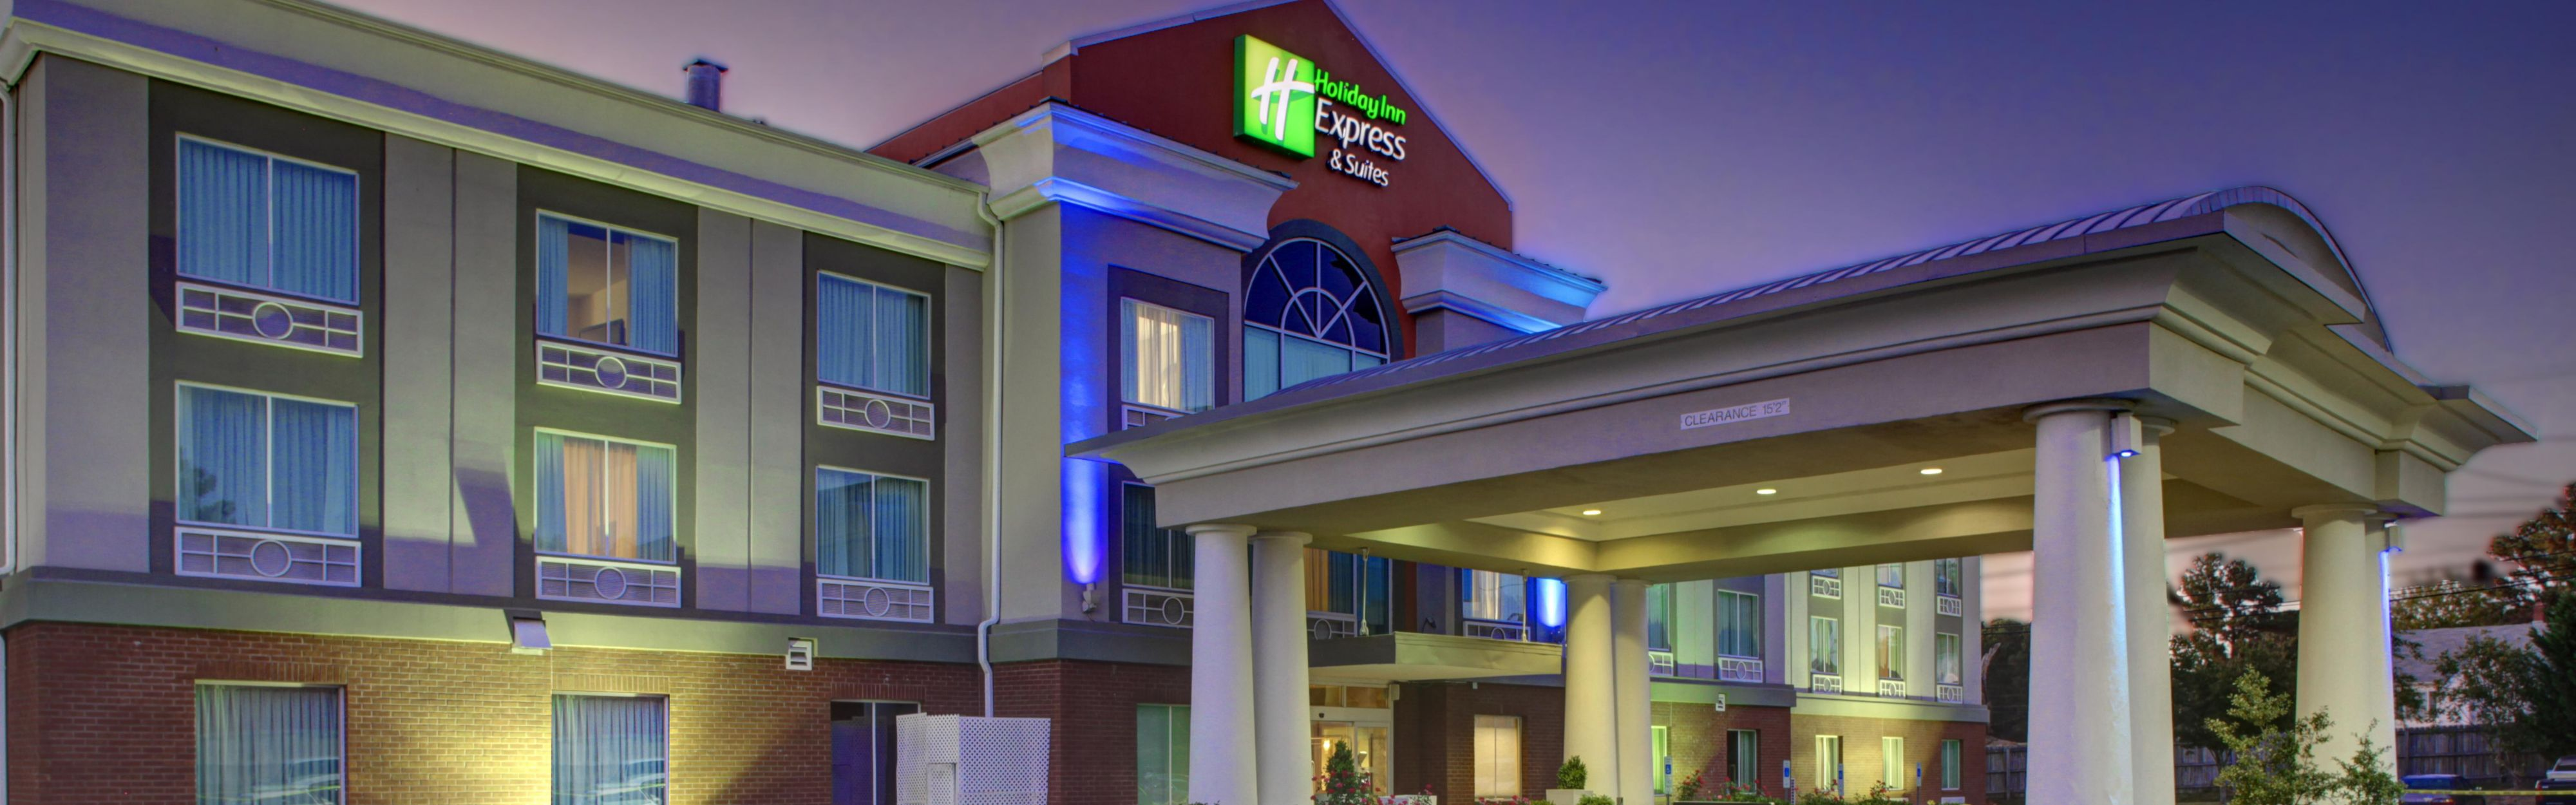 Holiday Inn Express Emporia image 0